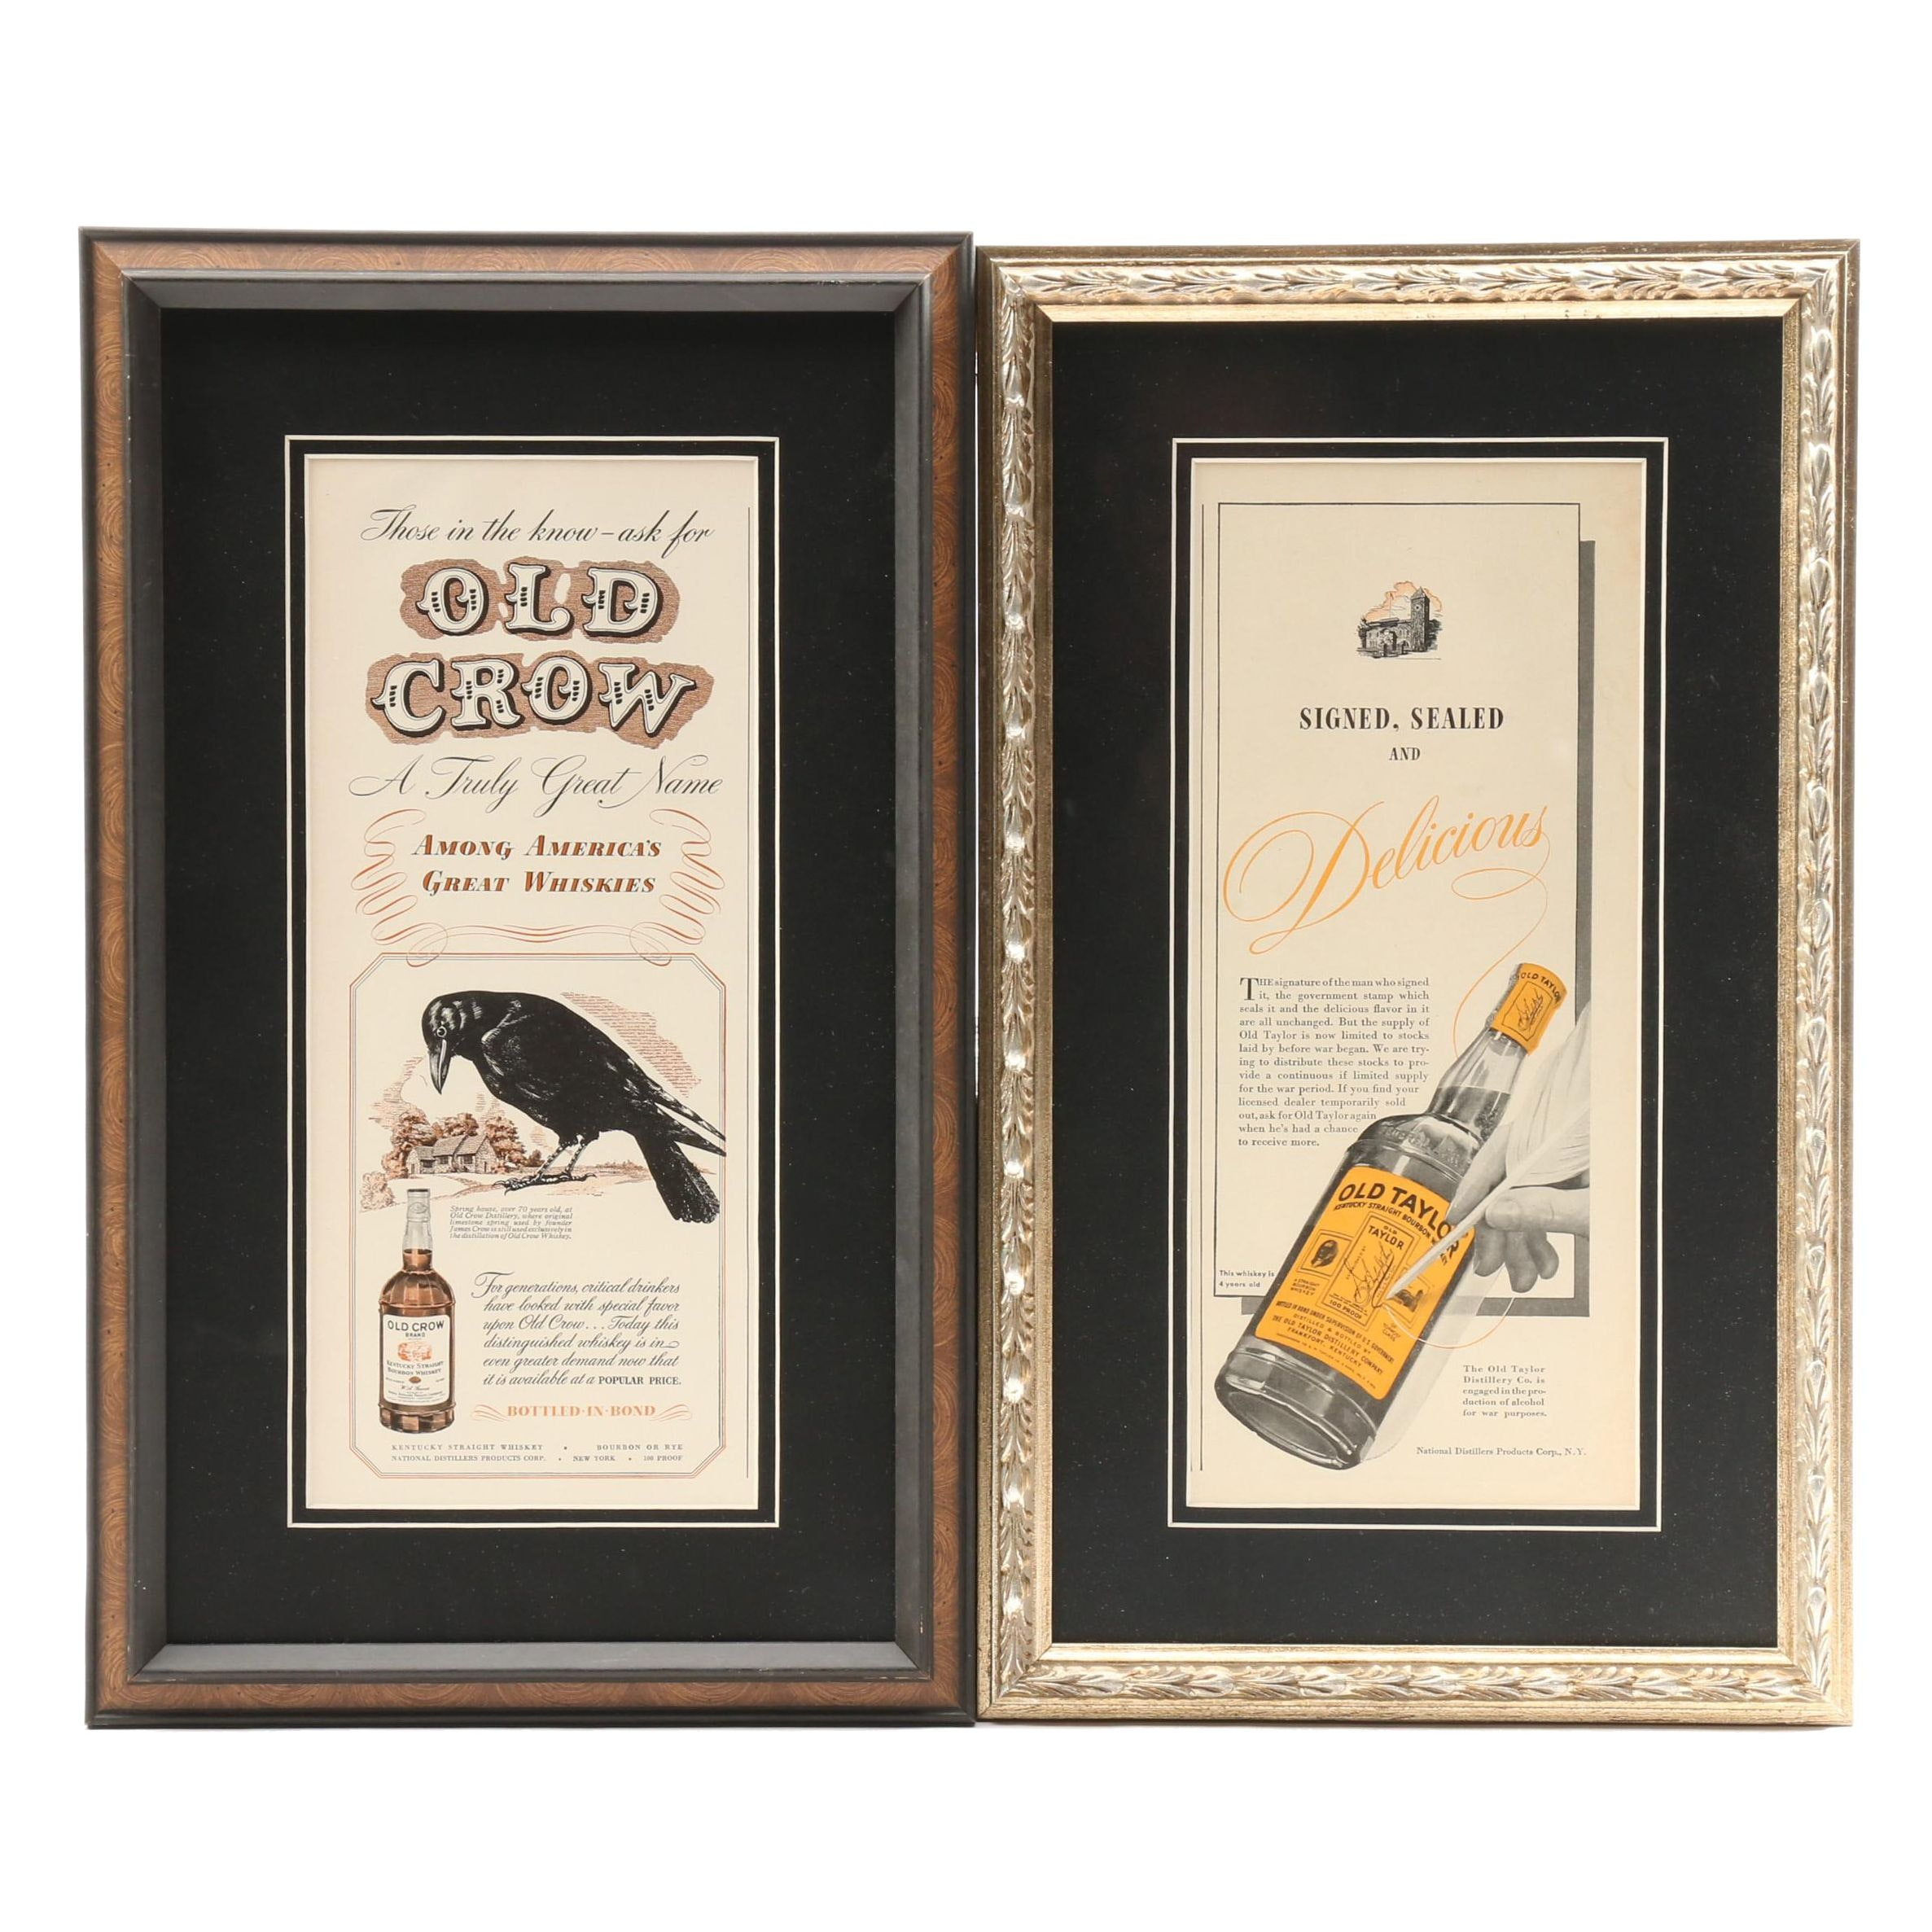 Vintage Advertisements for Old Crow and Old Taylor Bourbon